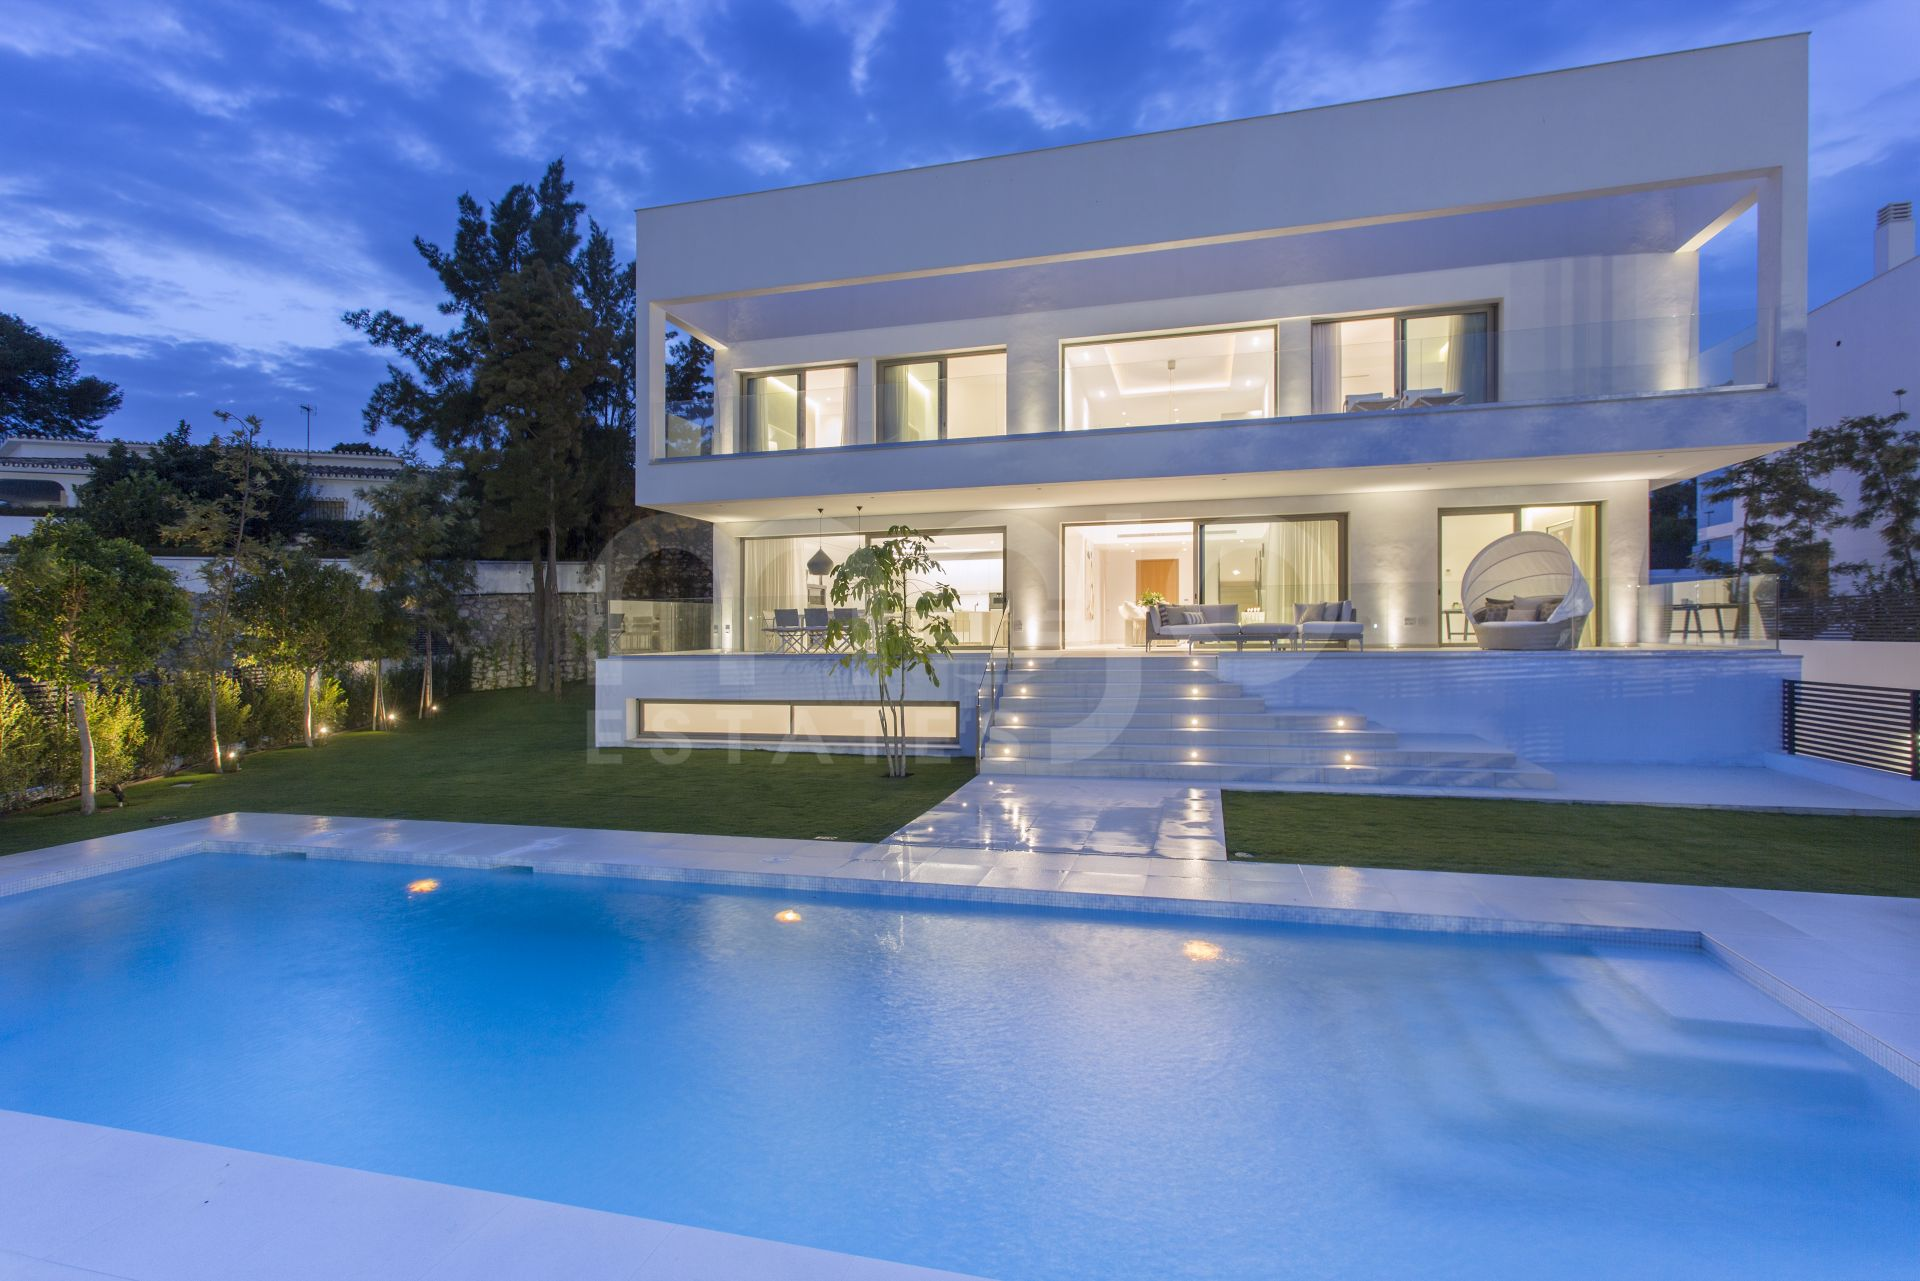 MODERN 5 BEDROOM LUXURY CONTEMPORARY VILLA AT CASA SOLA GUADALMINA BAJA